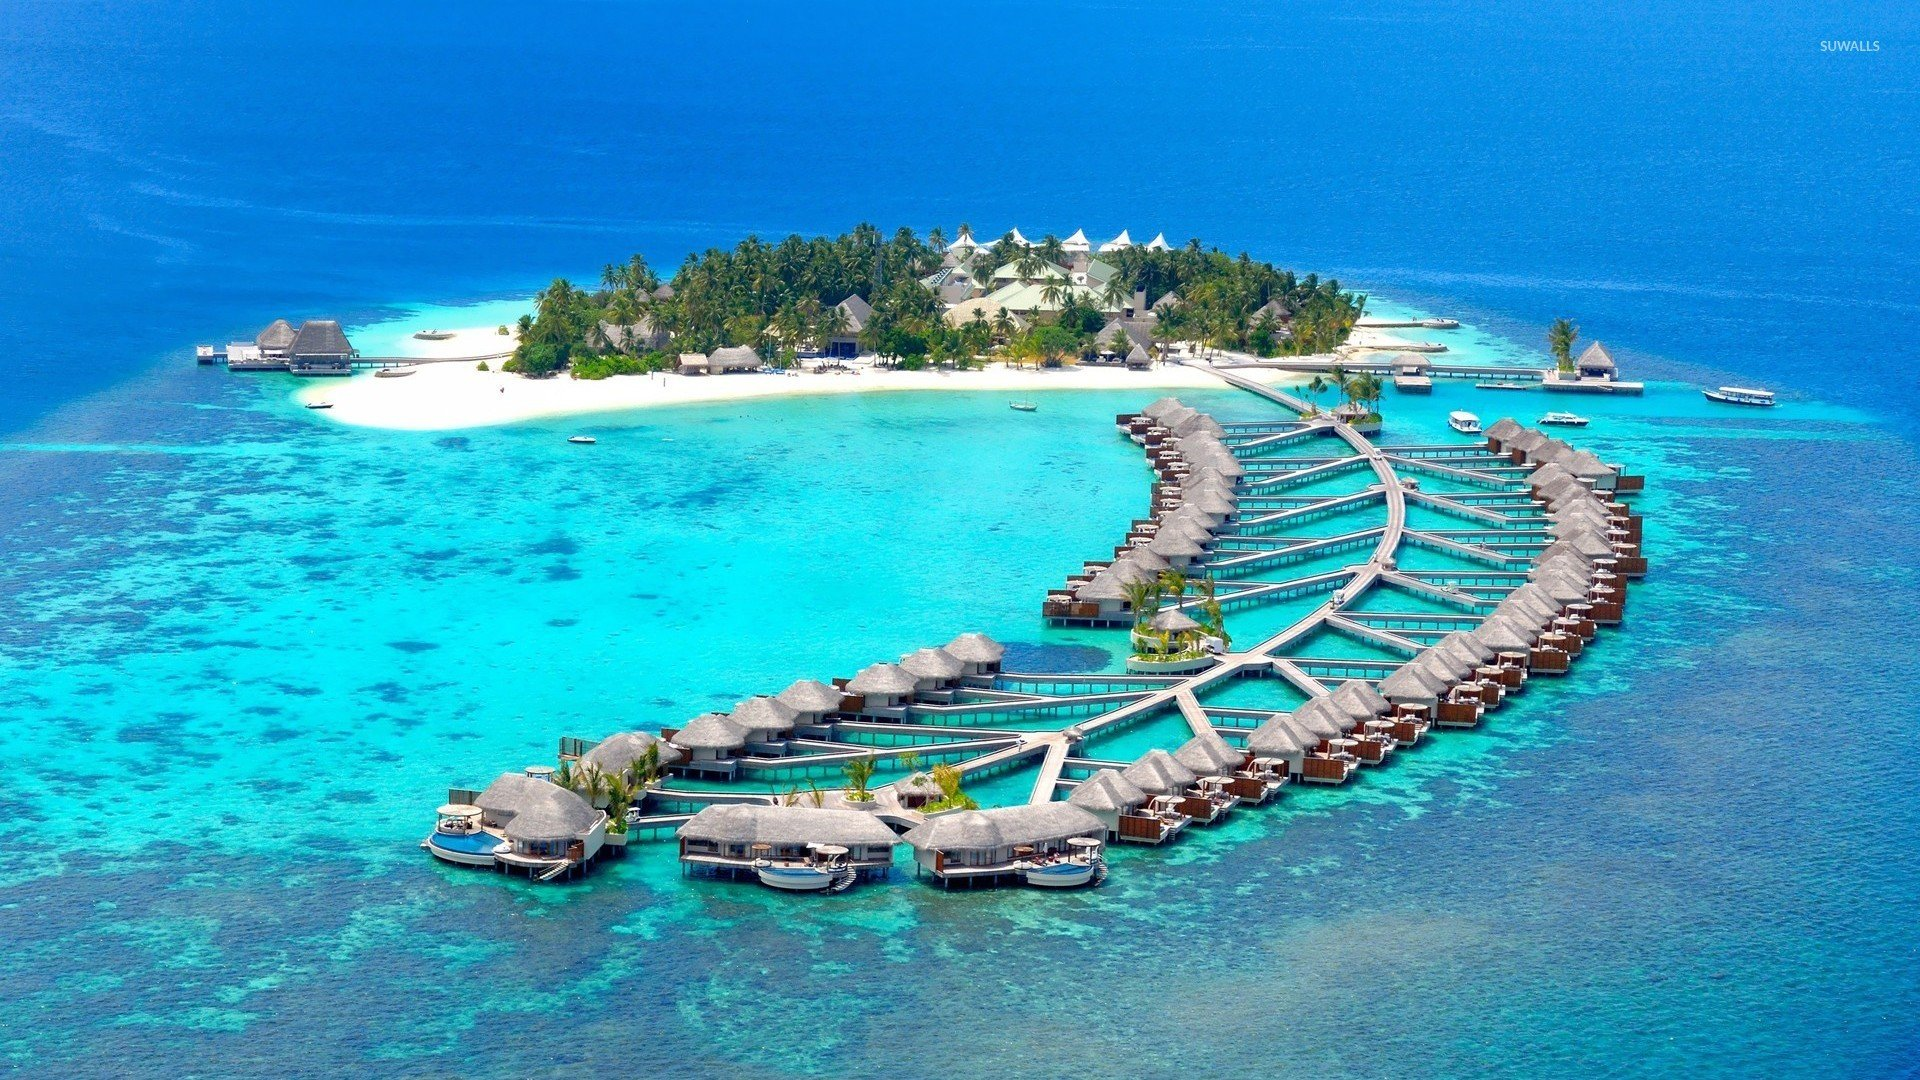 Island resort in Maldives wallpaper   Beach wallpapers   22341 1920x1080